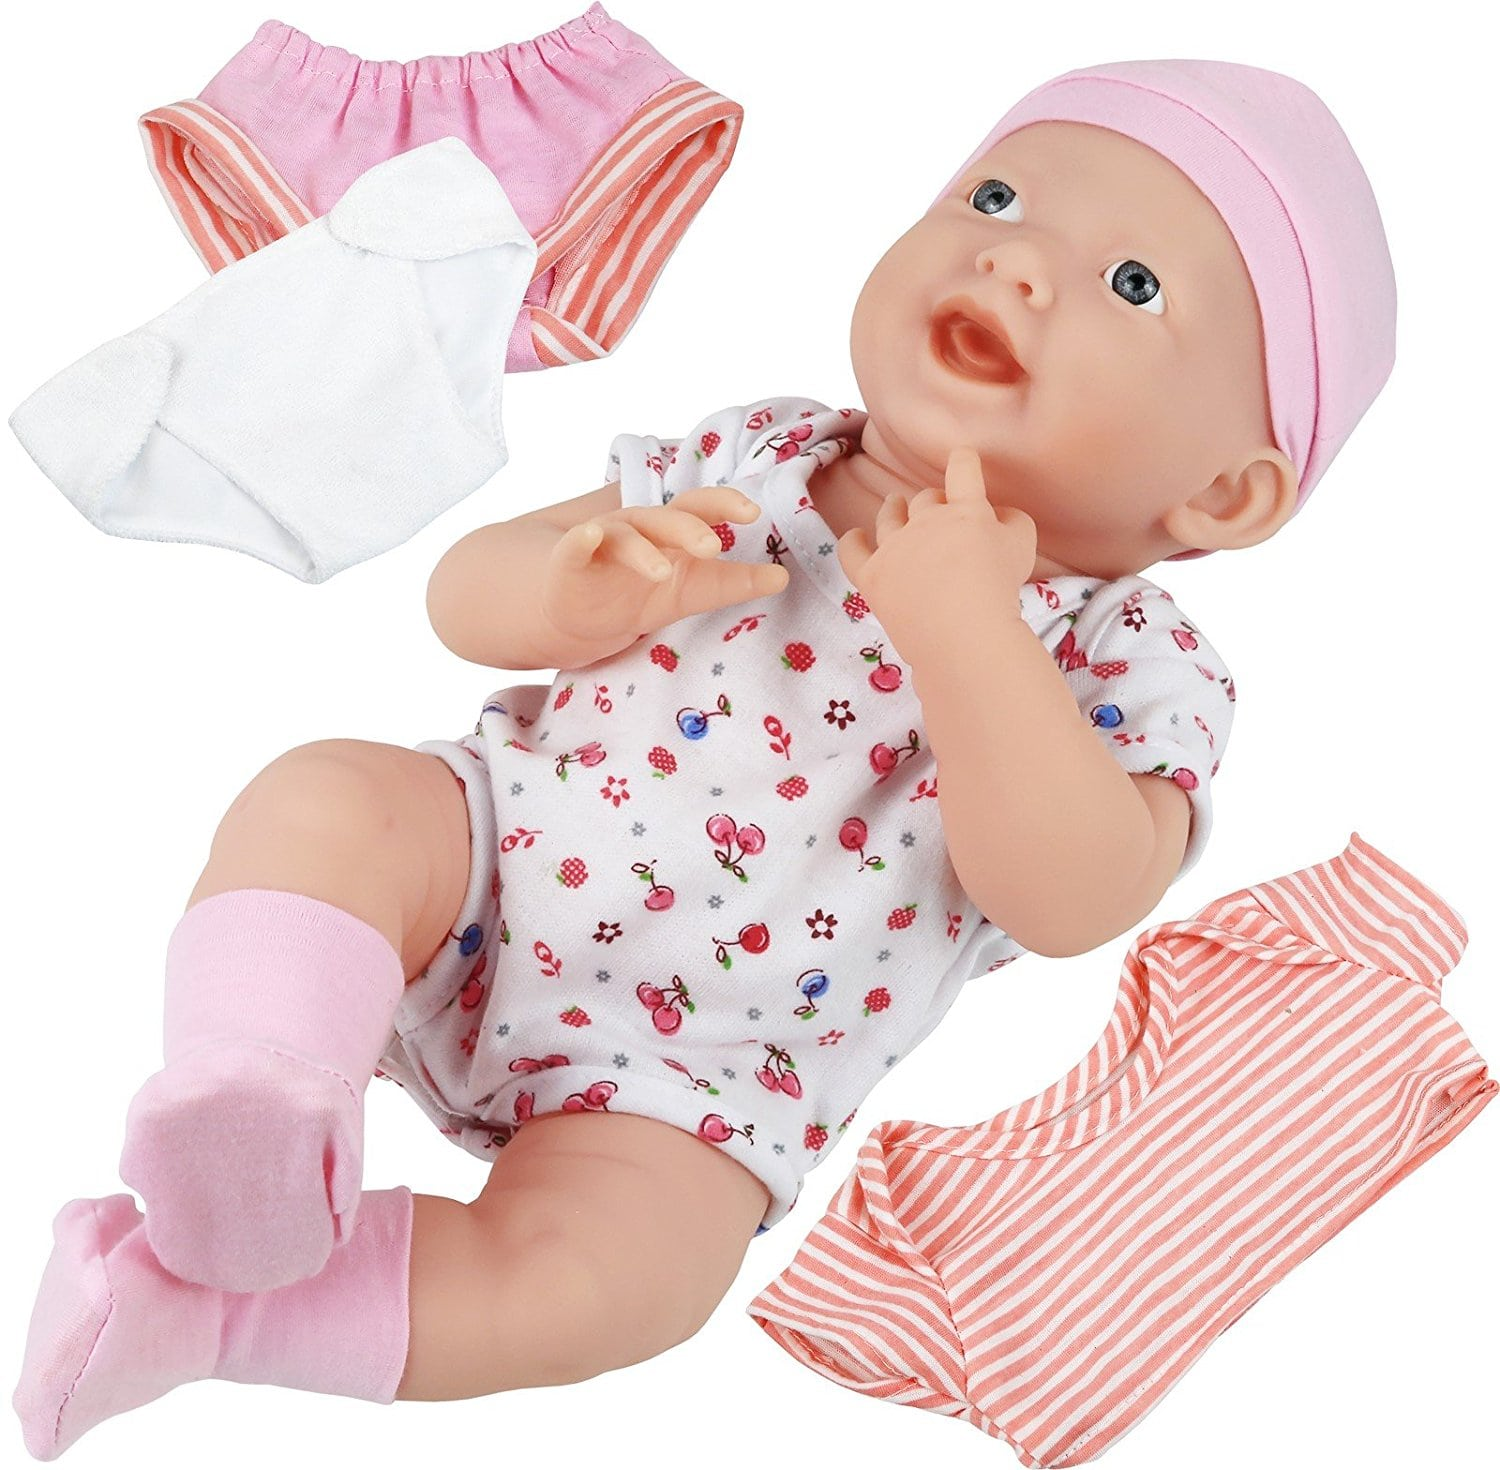 "38 Best Baby Dolls for Toddlers img draggable=""false"" class=""emoji"